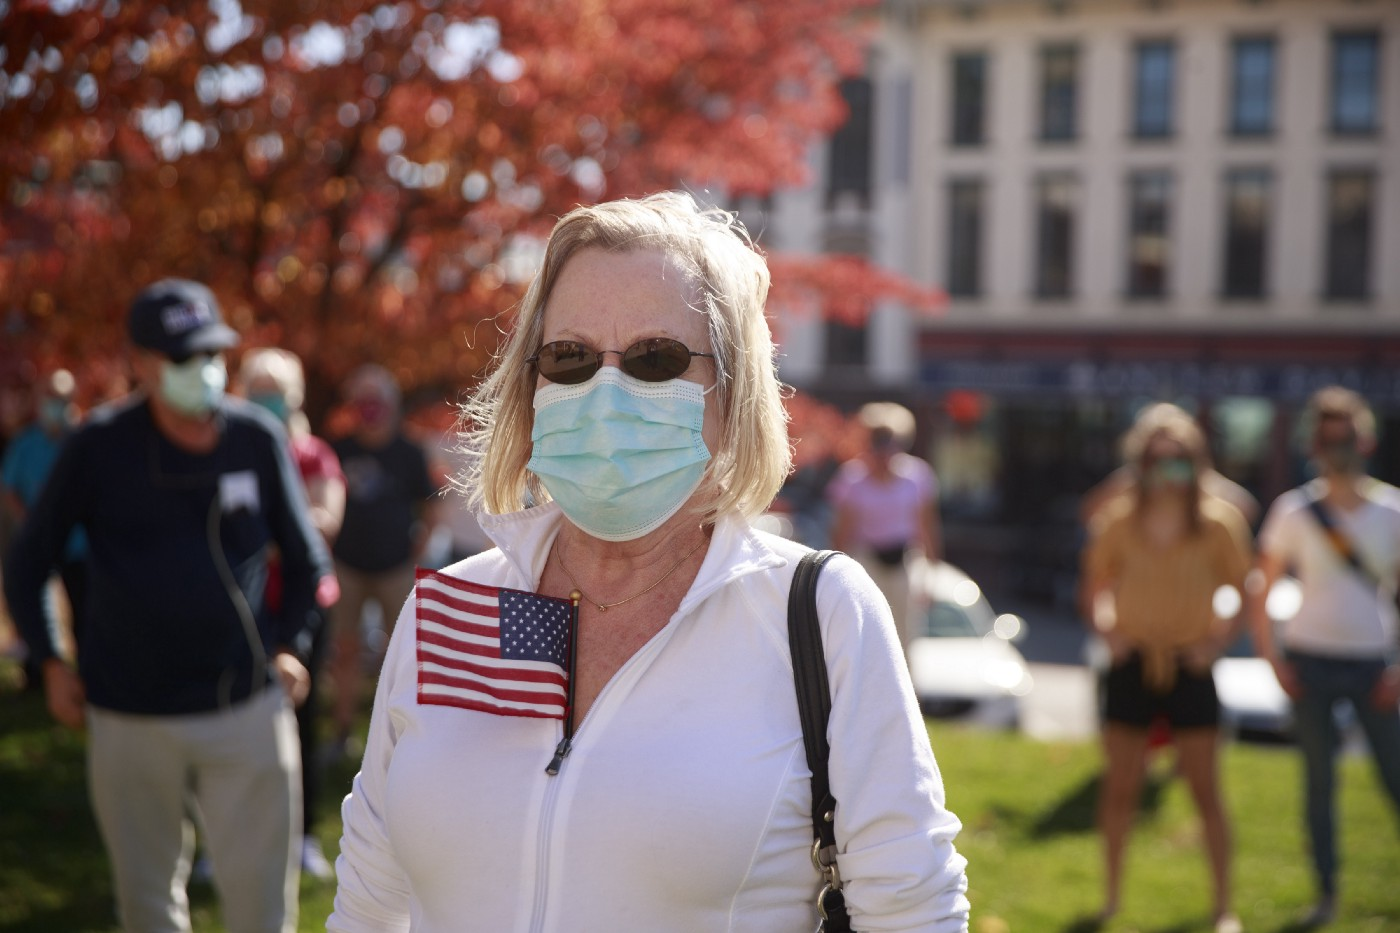 A woman seen with an American flag gathering at a Protect the Results rally at the Monroe County courthouse in Indiana